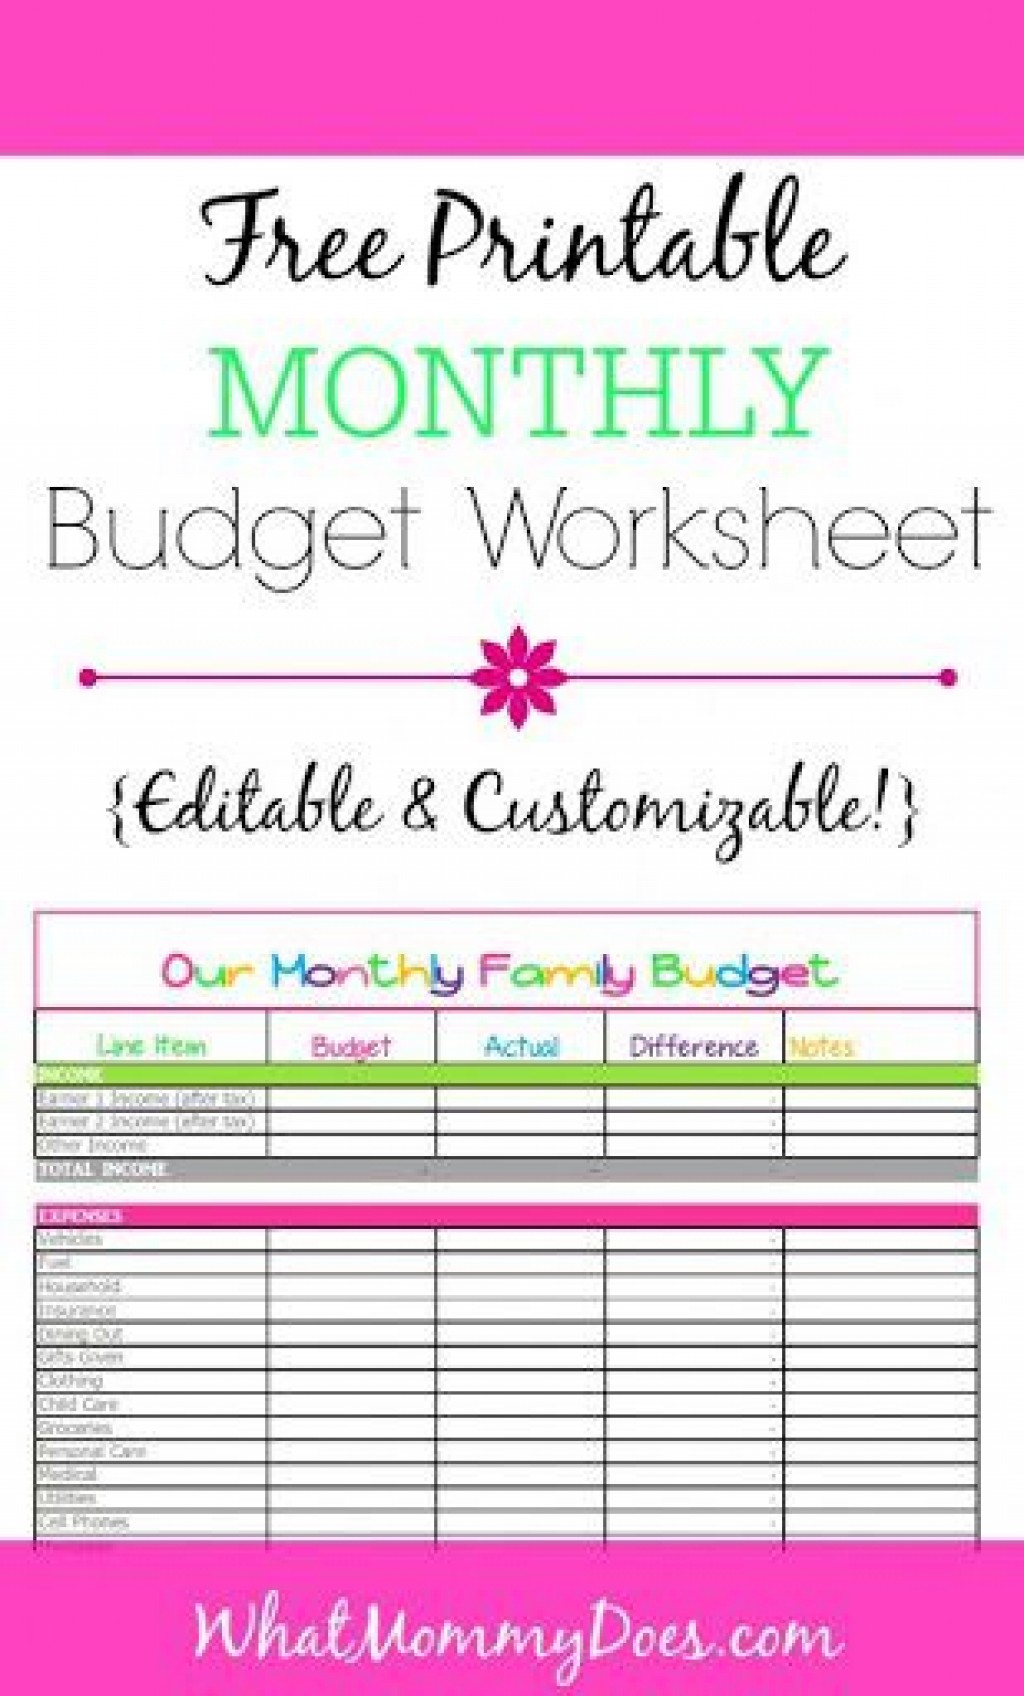 006 Imposing Monthly Household Budget Template Free Uk Sample Large